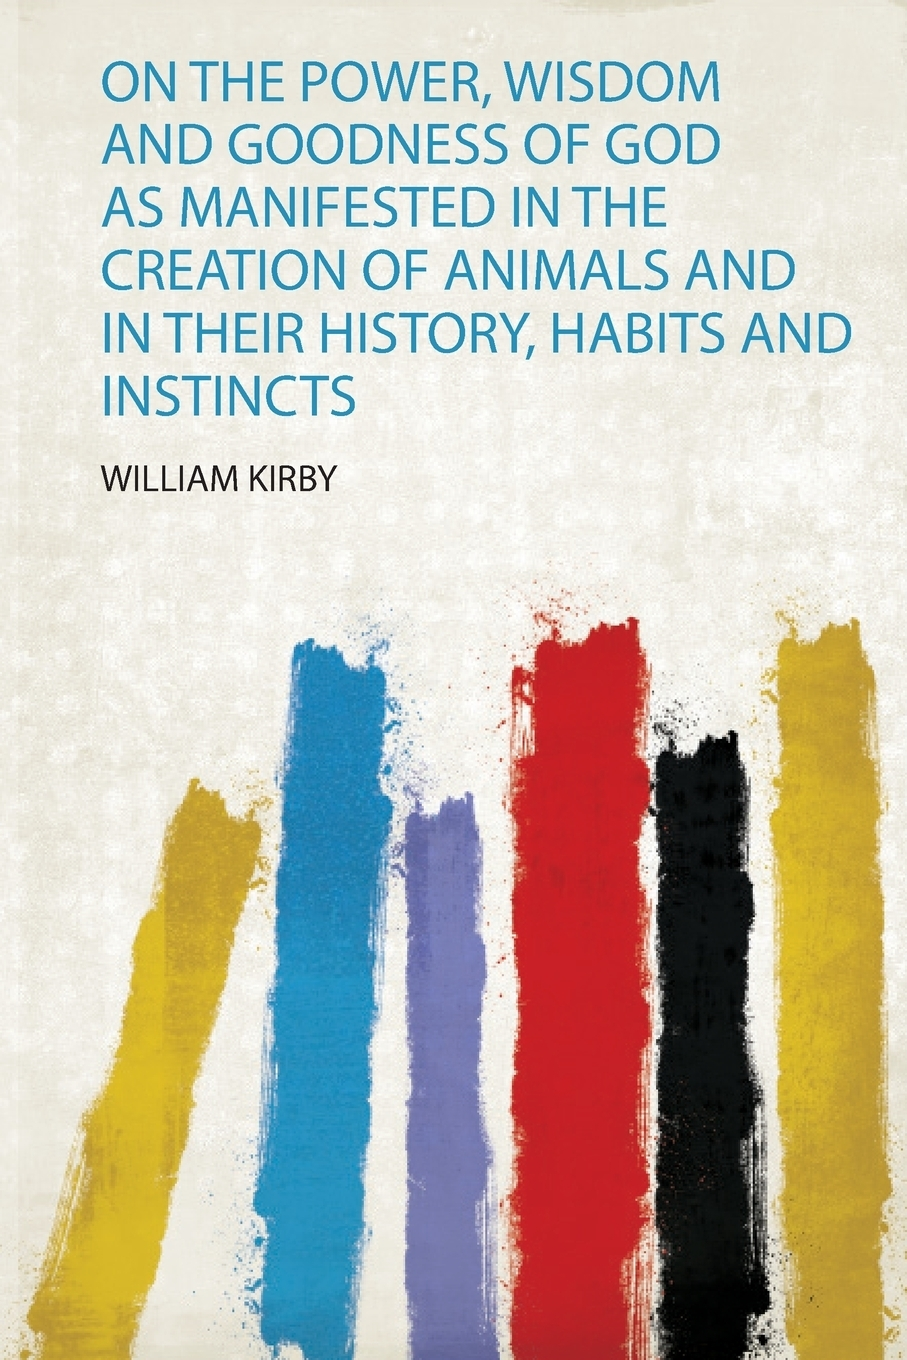 On the Power, Wisdom and Goodness of God as Manifested in the Creation of Animals and in Their History, Habits and Instincts william kirby on the power wisdom and goodness of god as manifested in the creation of animals and in their history habits and instincts volume 1